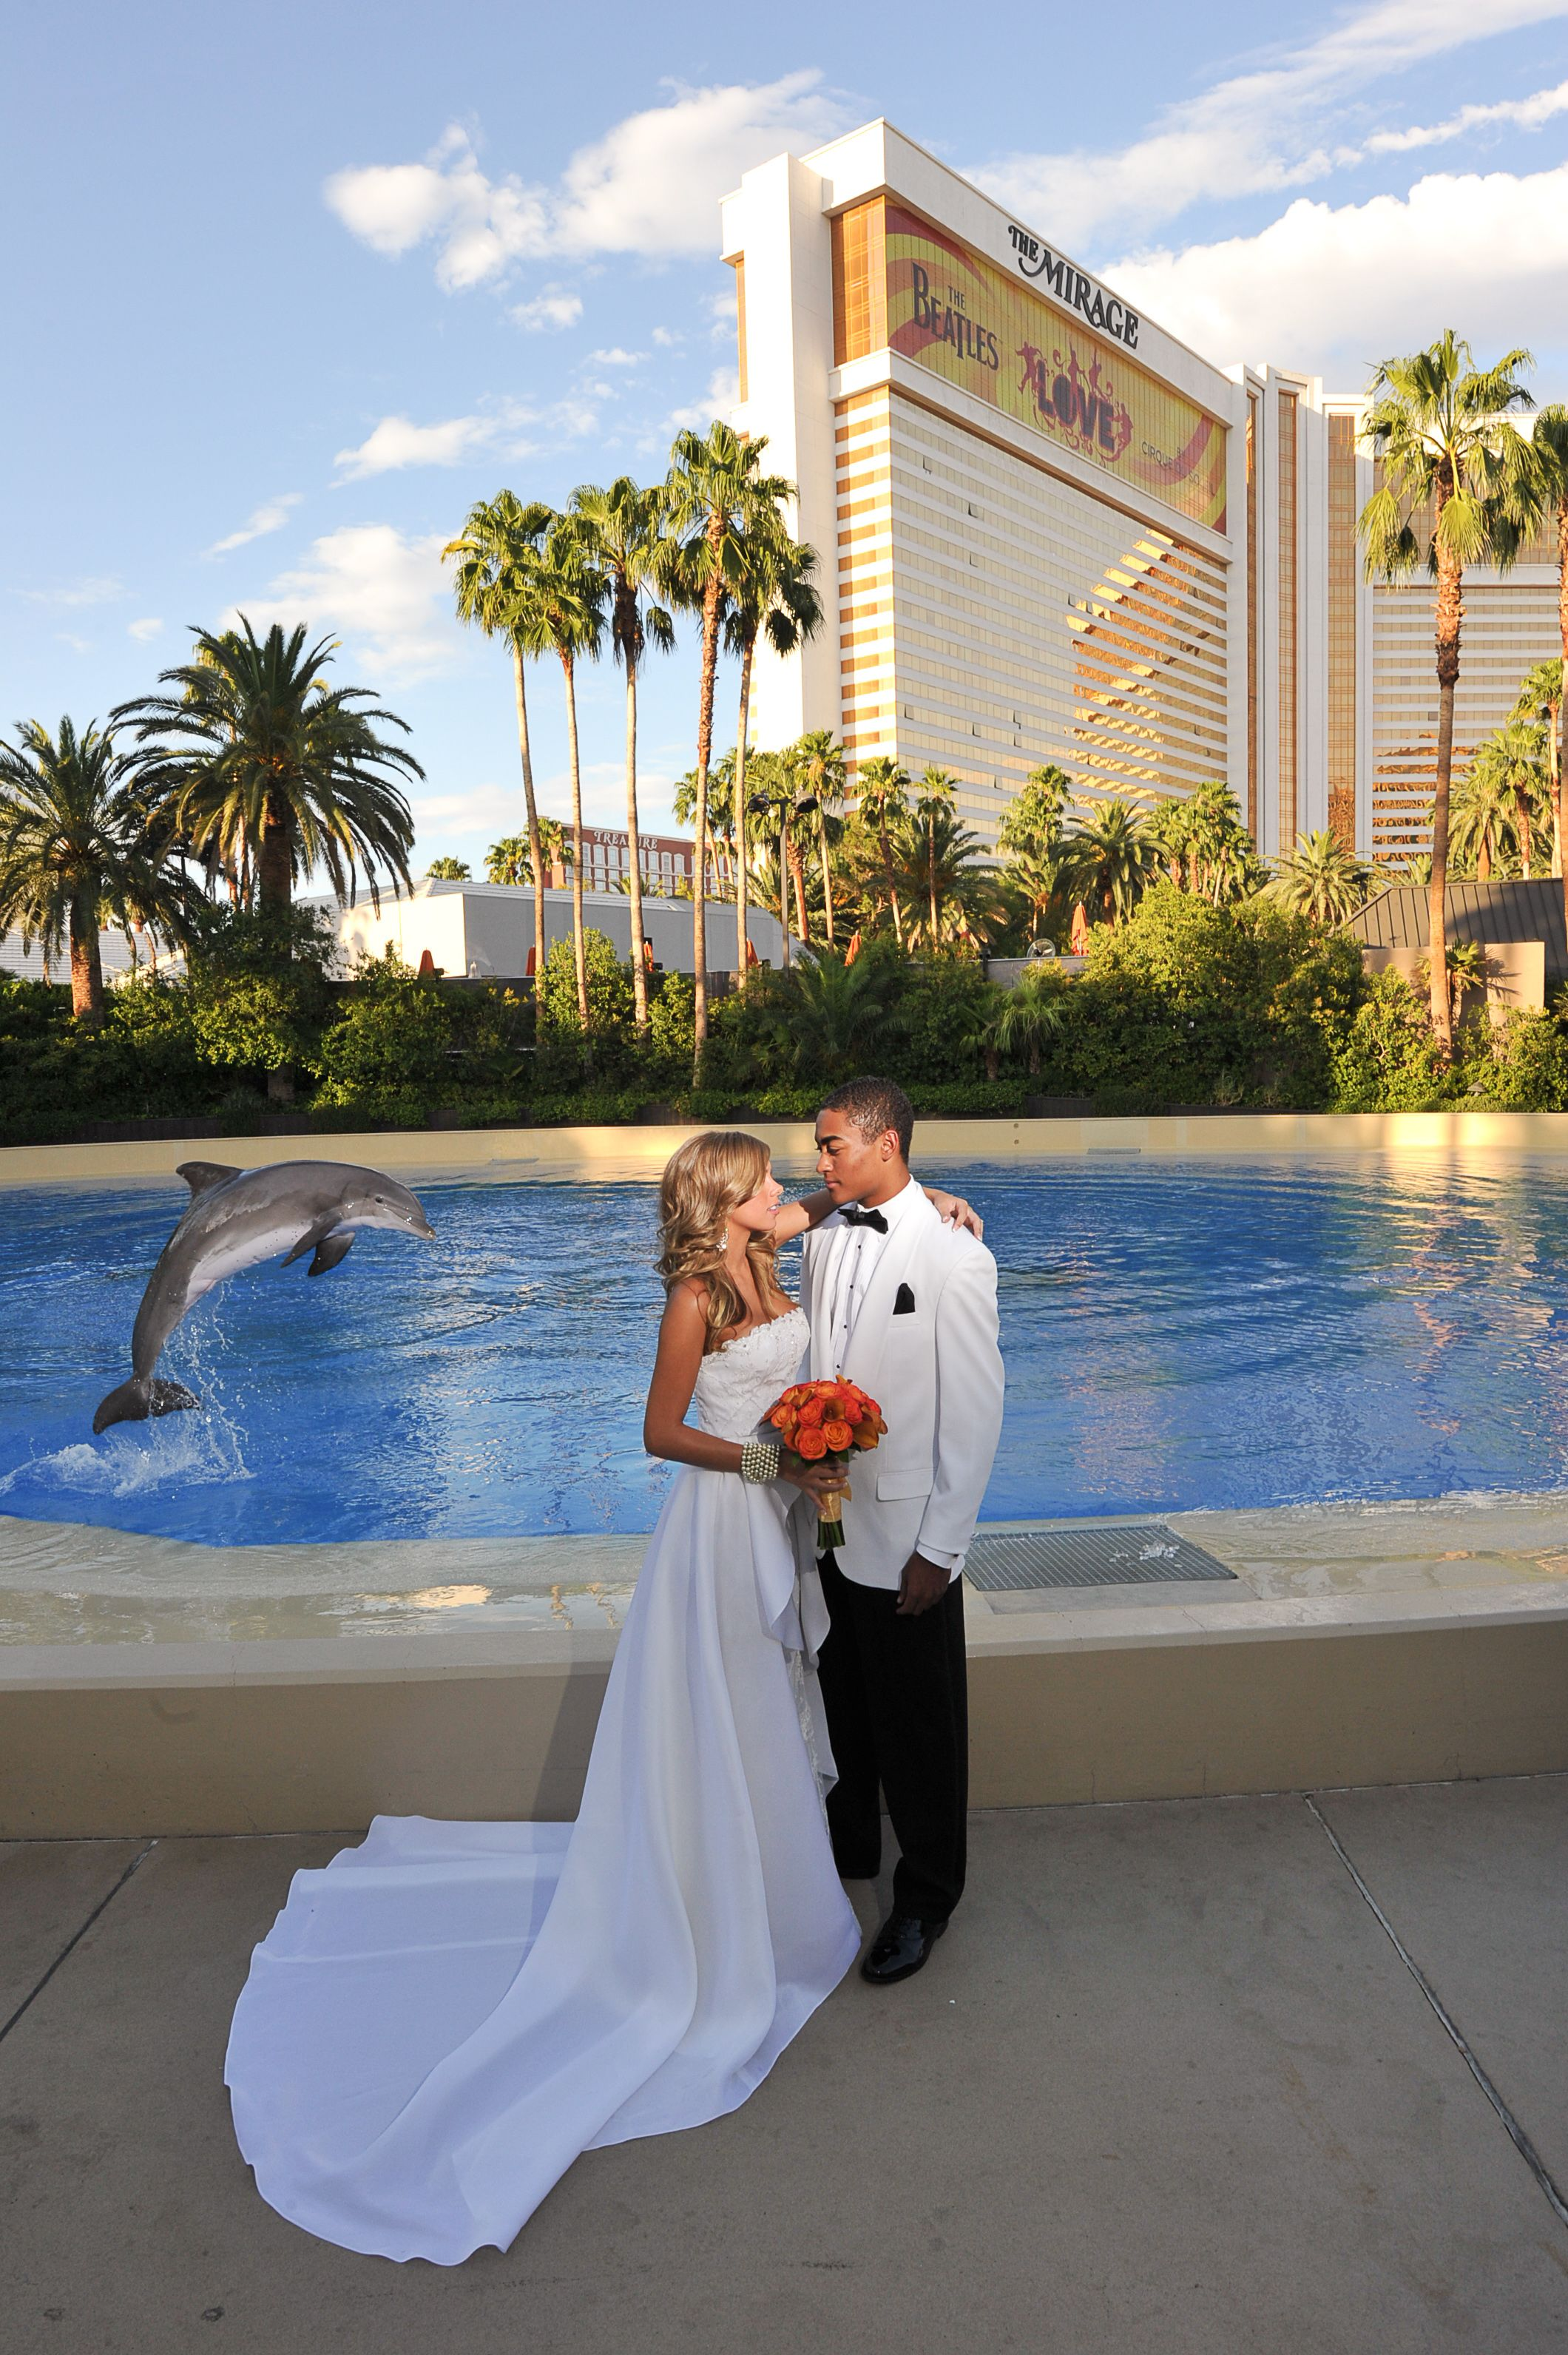 Weddings At The Mirage Our Dolphins Want To Congratulate You Too Info